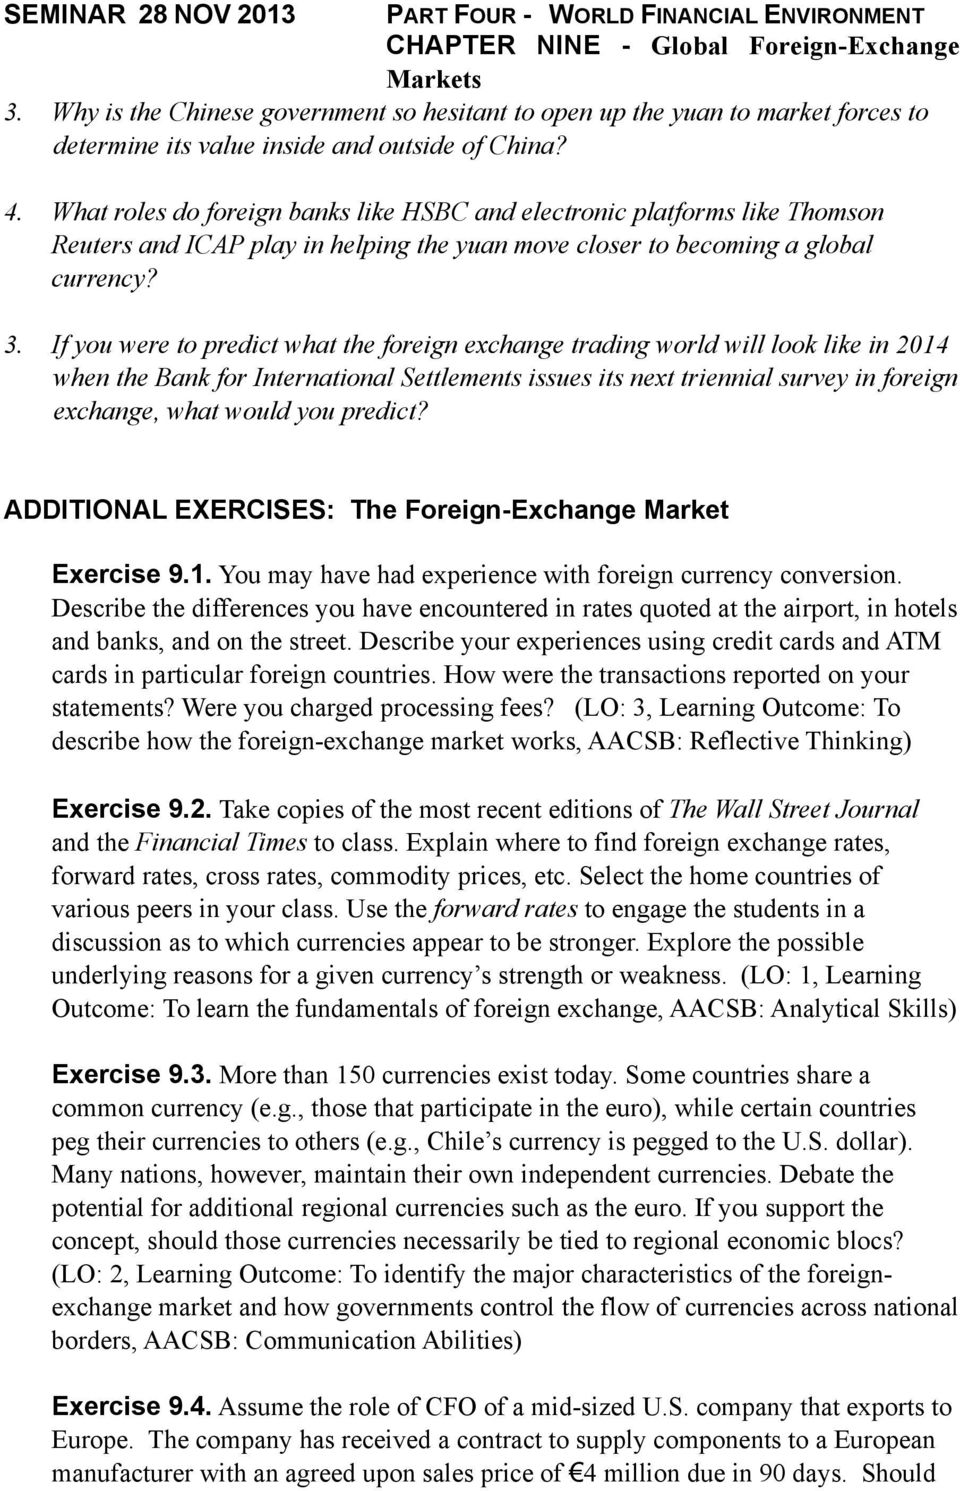 If you were to predict what the foreign exchange trading world will look like in 2014 when the Bank for International Settlements issues its next triennial survey in foreign exchange, what would you